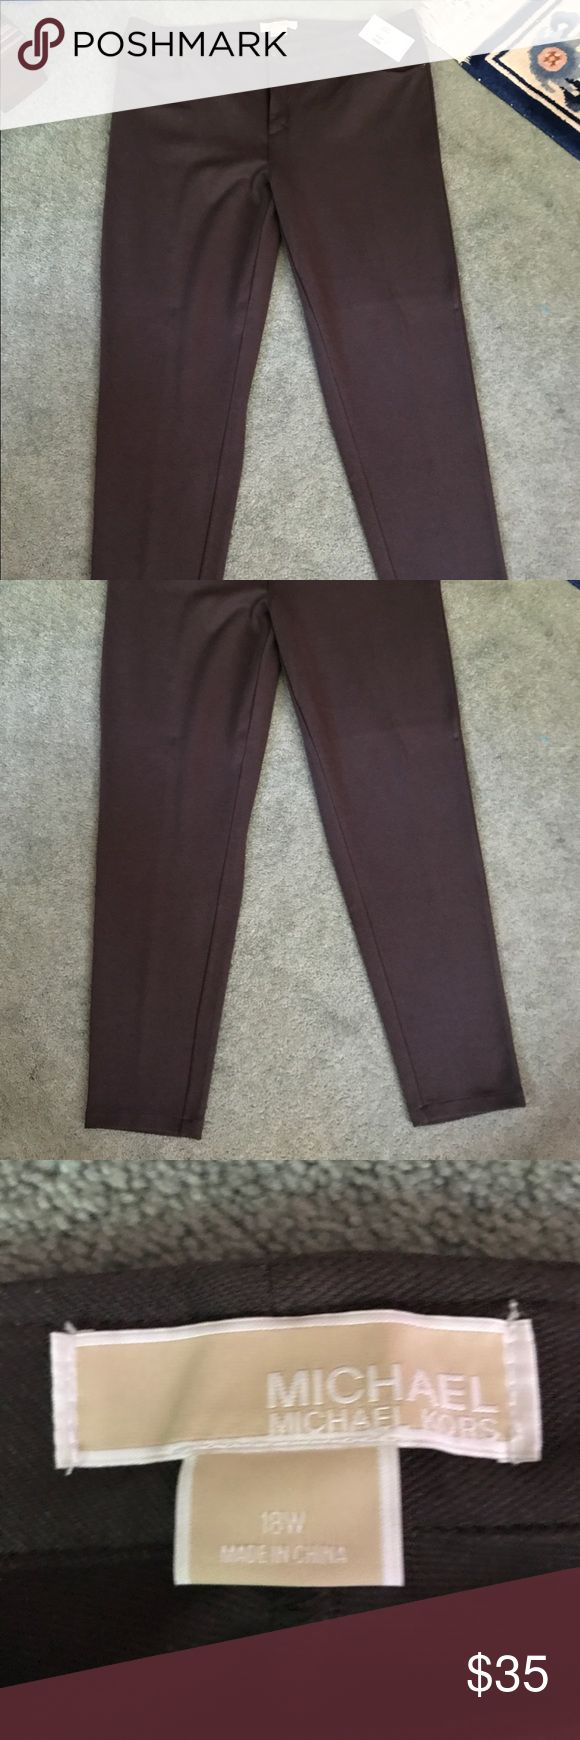 Ladies Michael Kors Knit Pants BRAND NEW Michael Kors Ladies Brown Knit Pants size 18. These are BRAND NEW! Please feel free to ask any questions. MICHAEL Michael Kors Pants Trousers